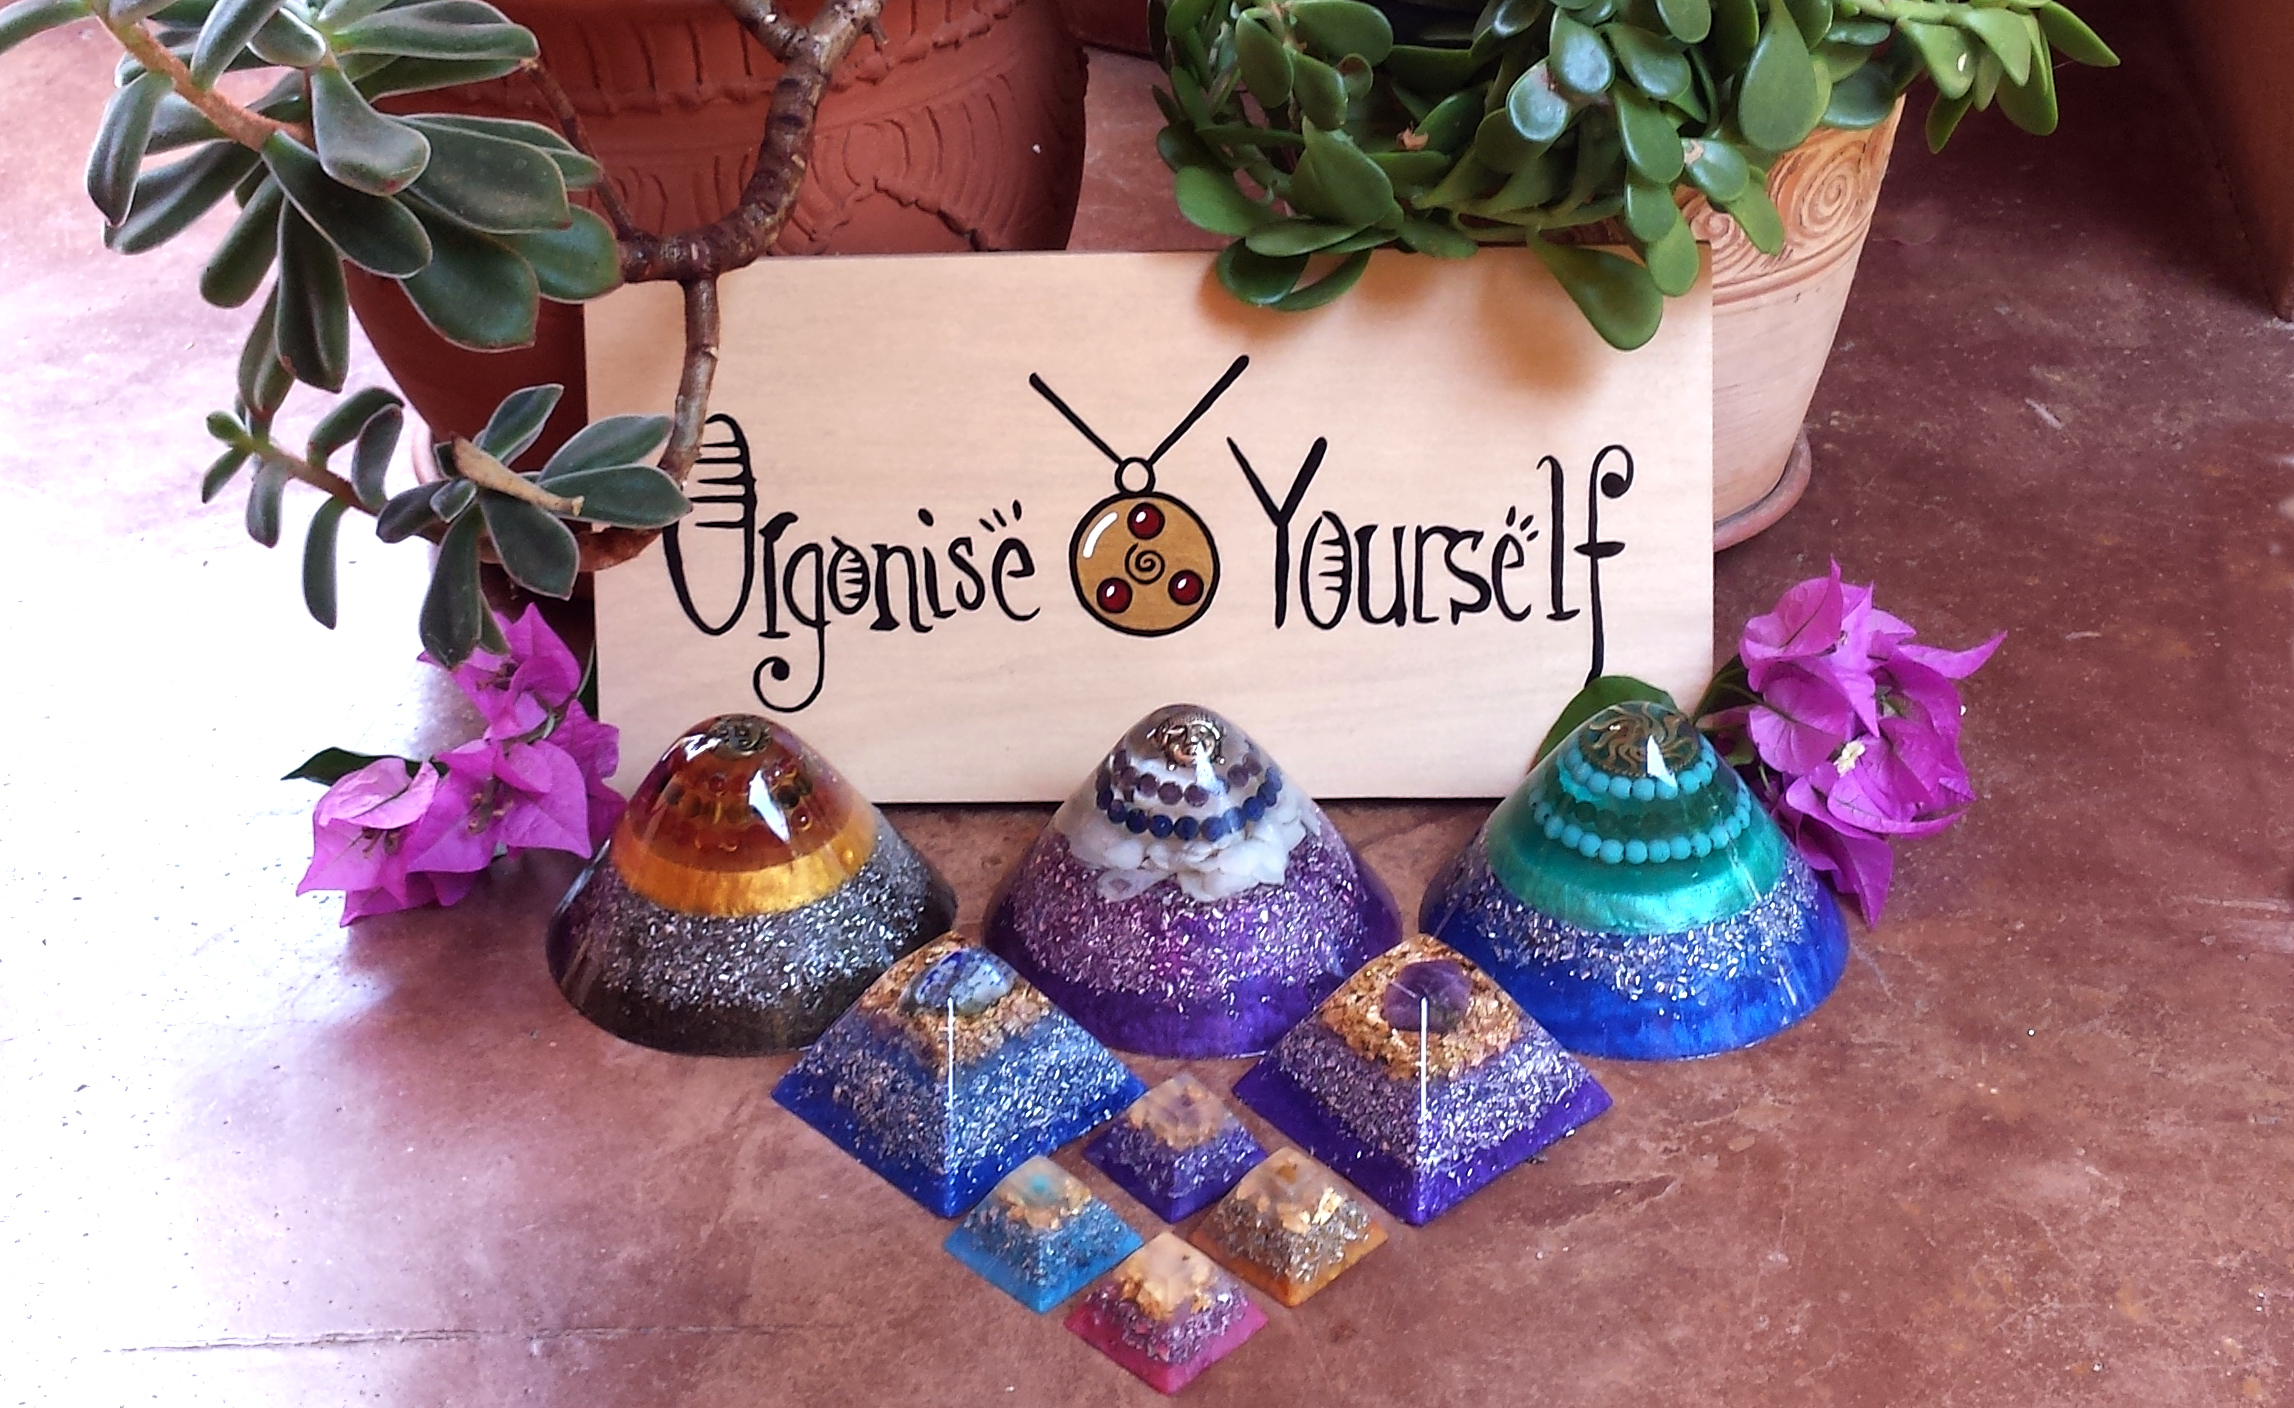 Orgonise yourself crystal healing orgone crystal energy healing healing crystal orgone energy jewellery and art mozeypictures Choice Image